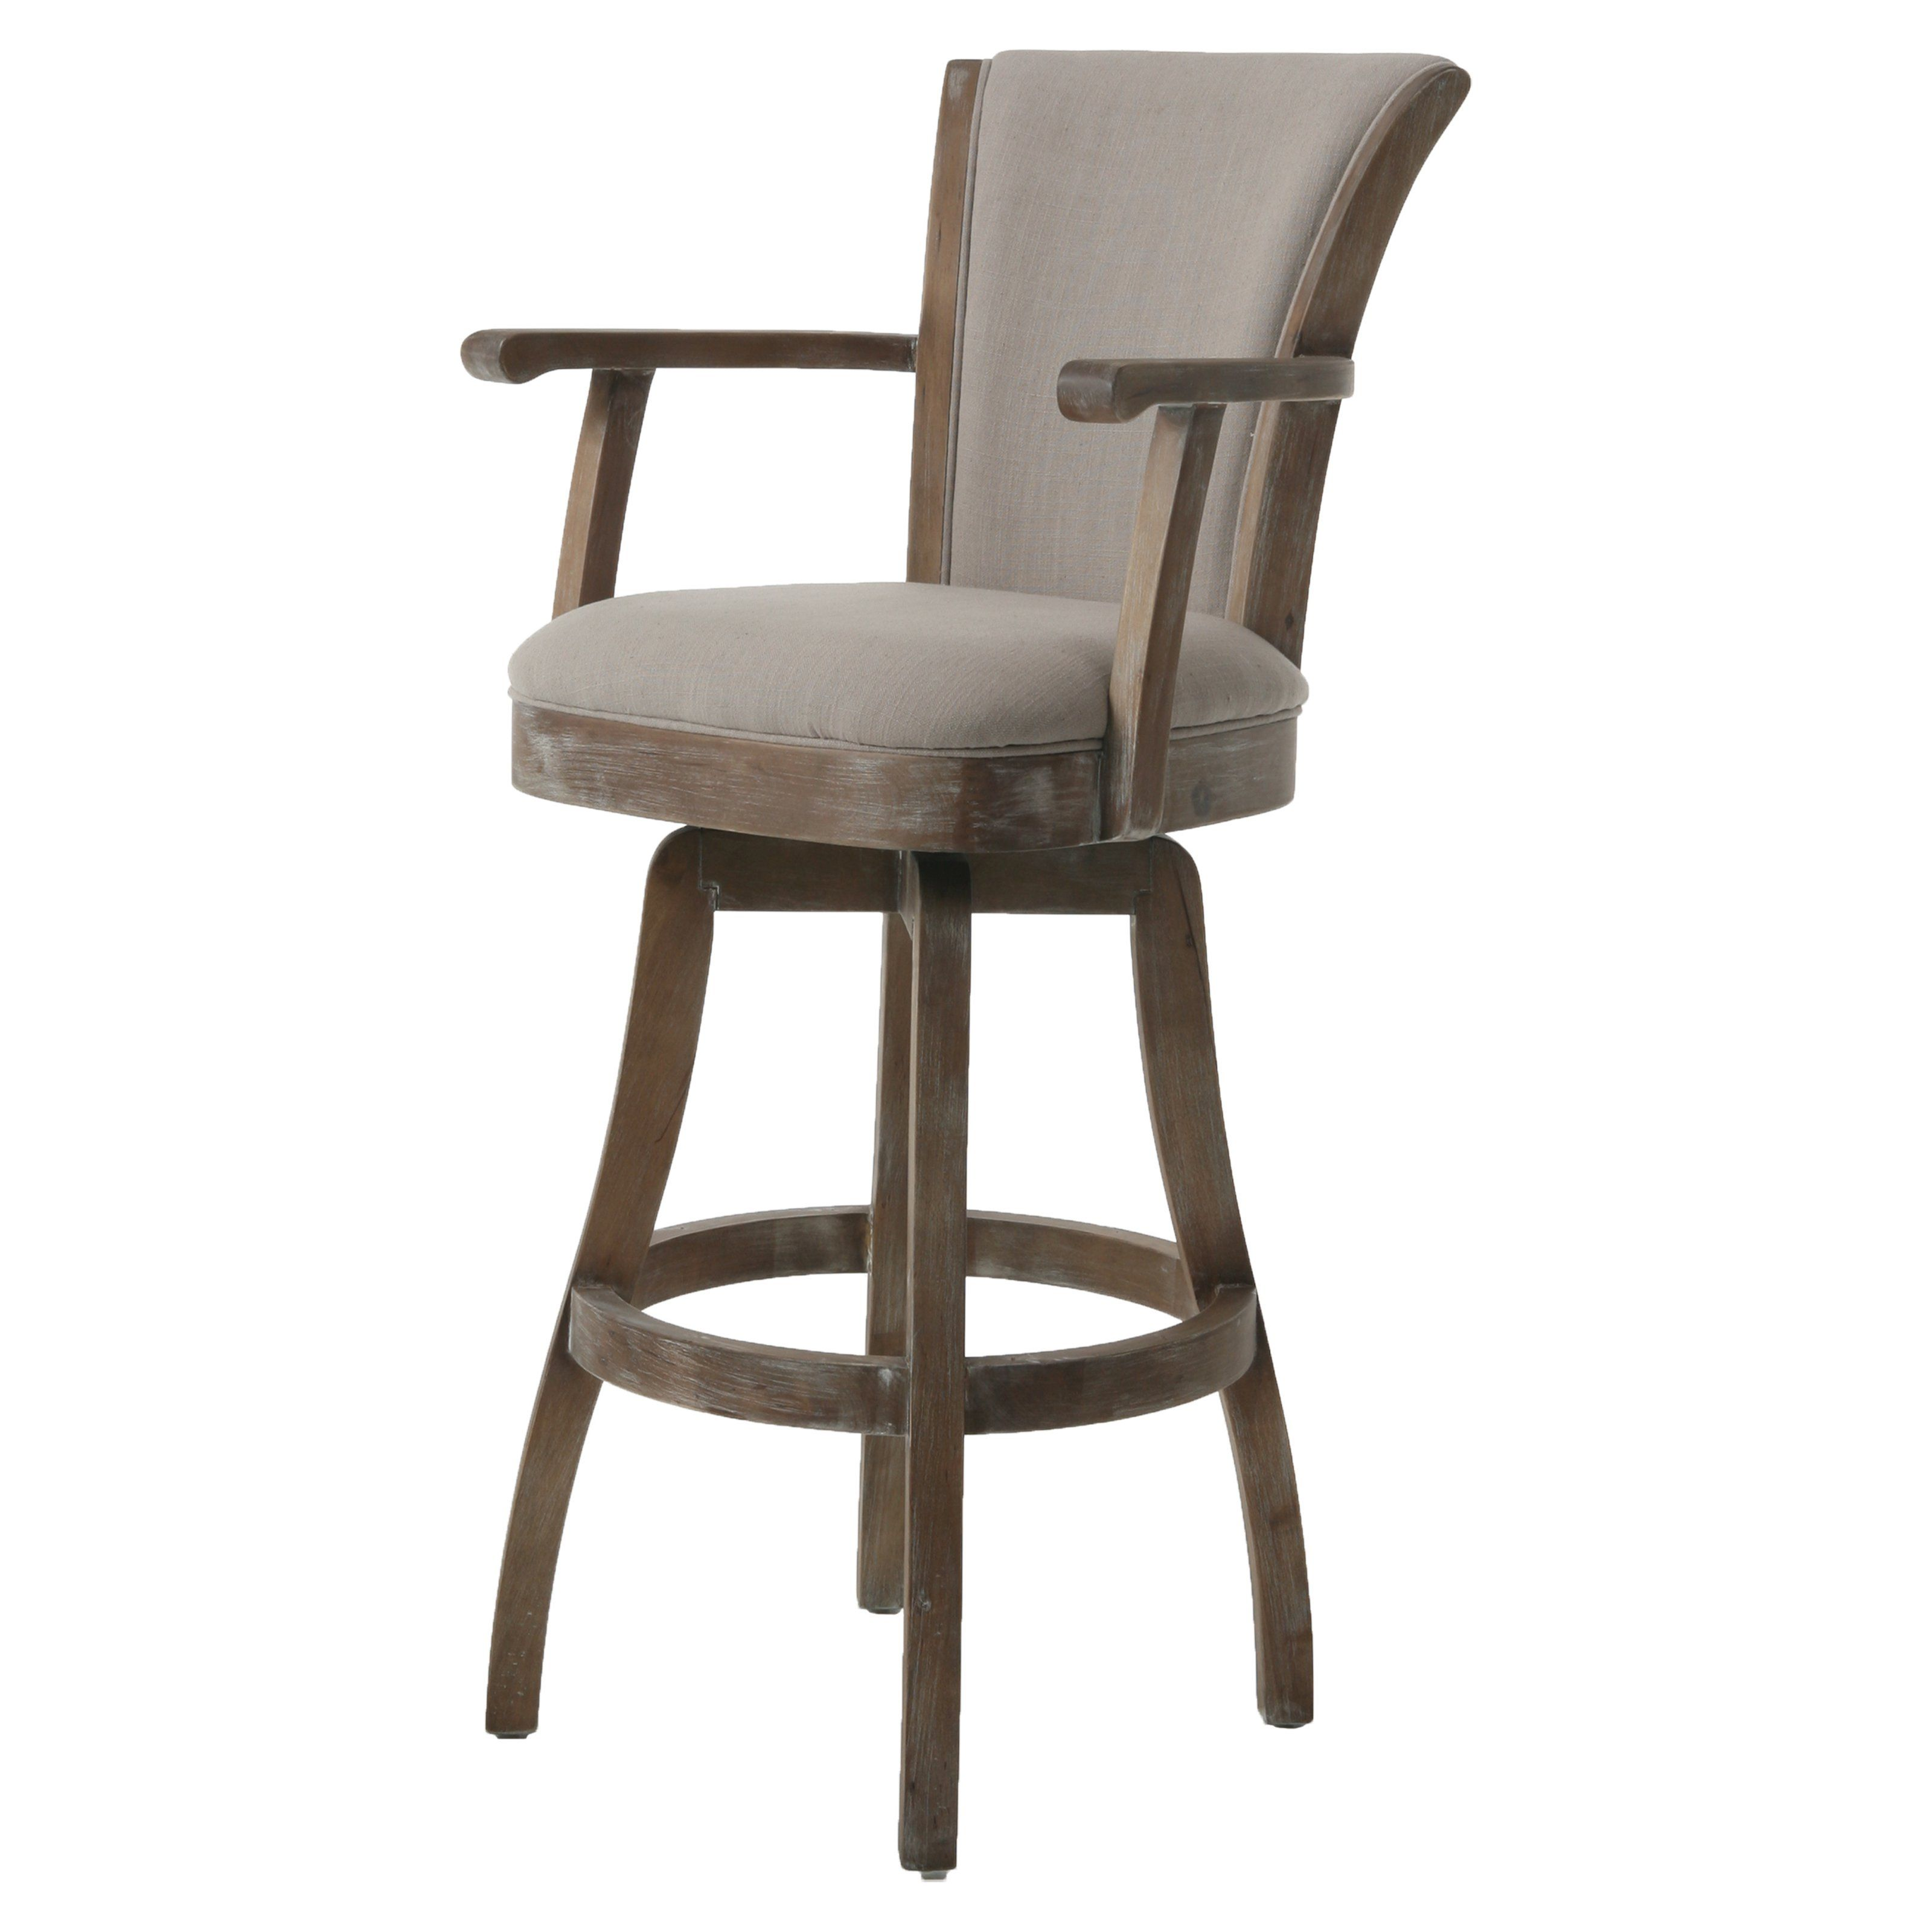 Counter Height Chairs With Arms Impacterra Glenwood Swivel Bar Stool With Arms From Hayneedle